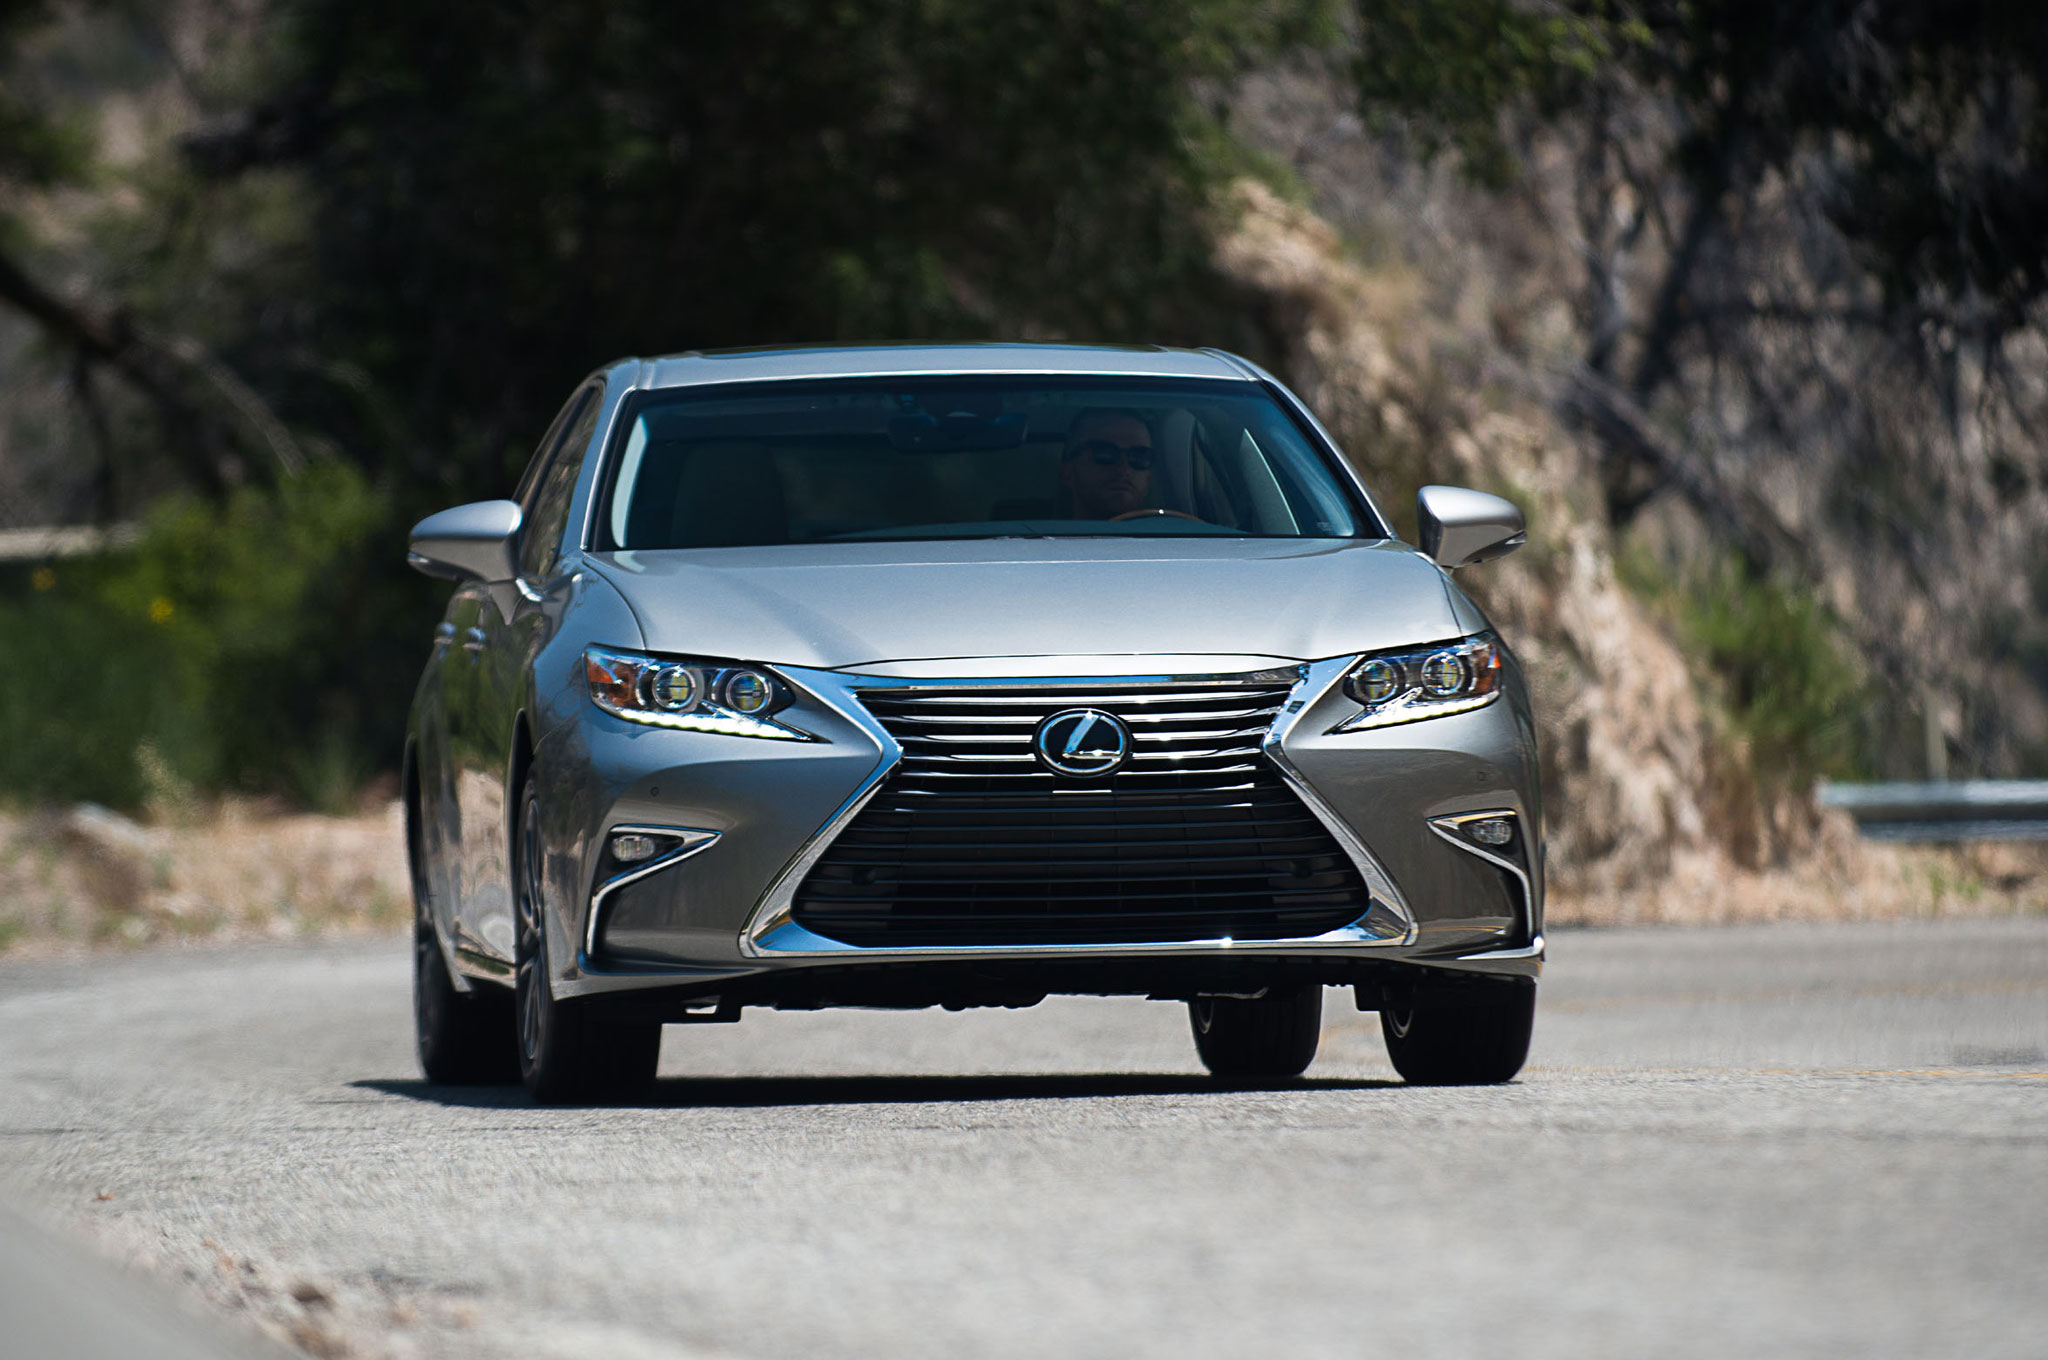 2016 lexus es 350 es 300h updated with new look safety features. Black Bedroom Furniture Sets. Home Design Ideas